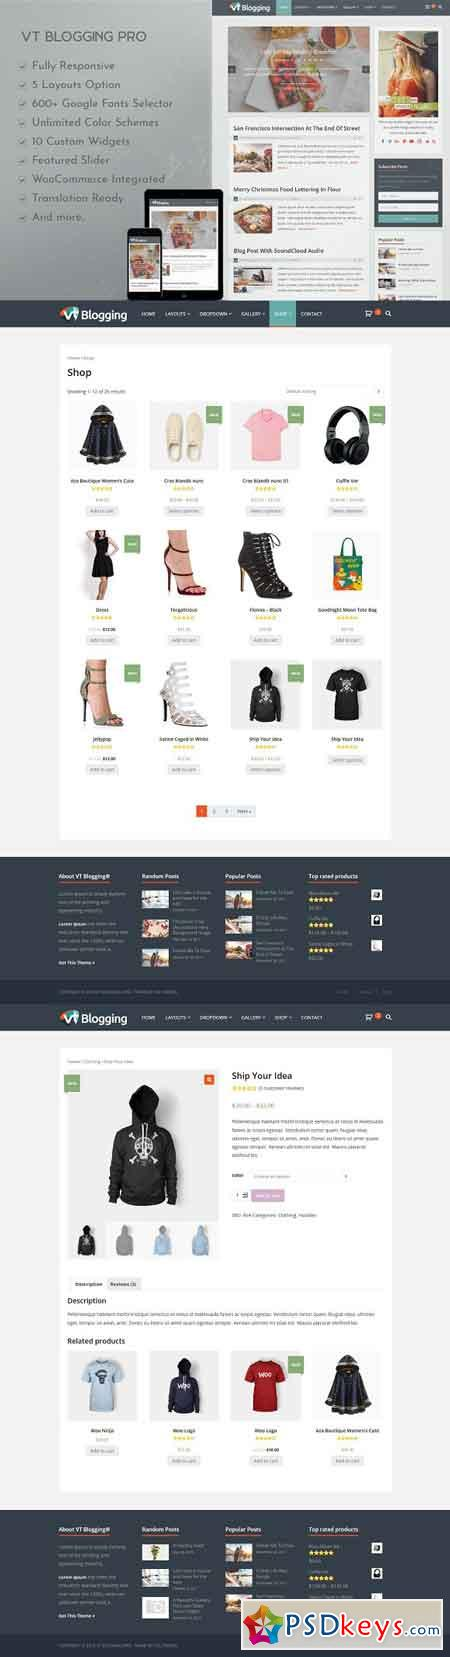 VT Blogging Pro WordPress Theme 2556004